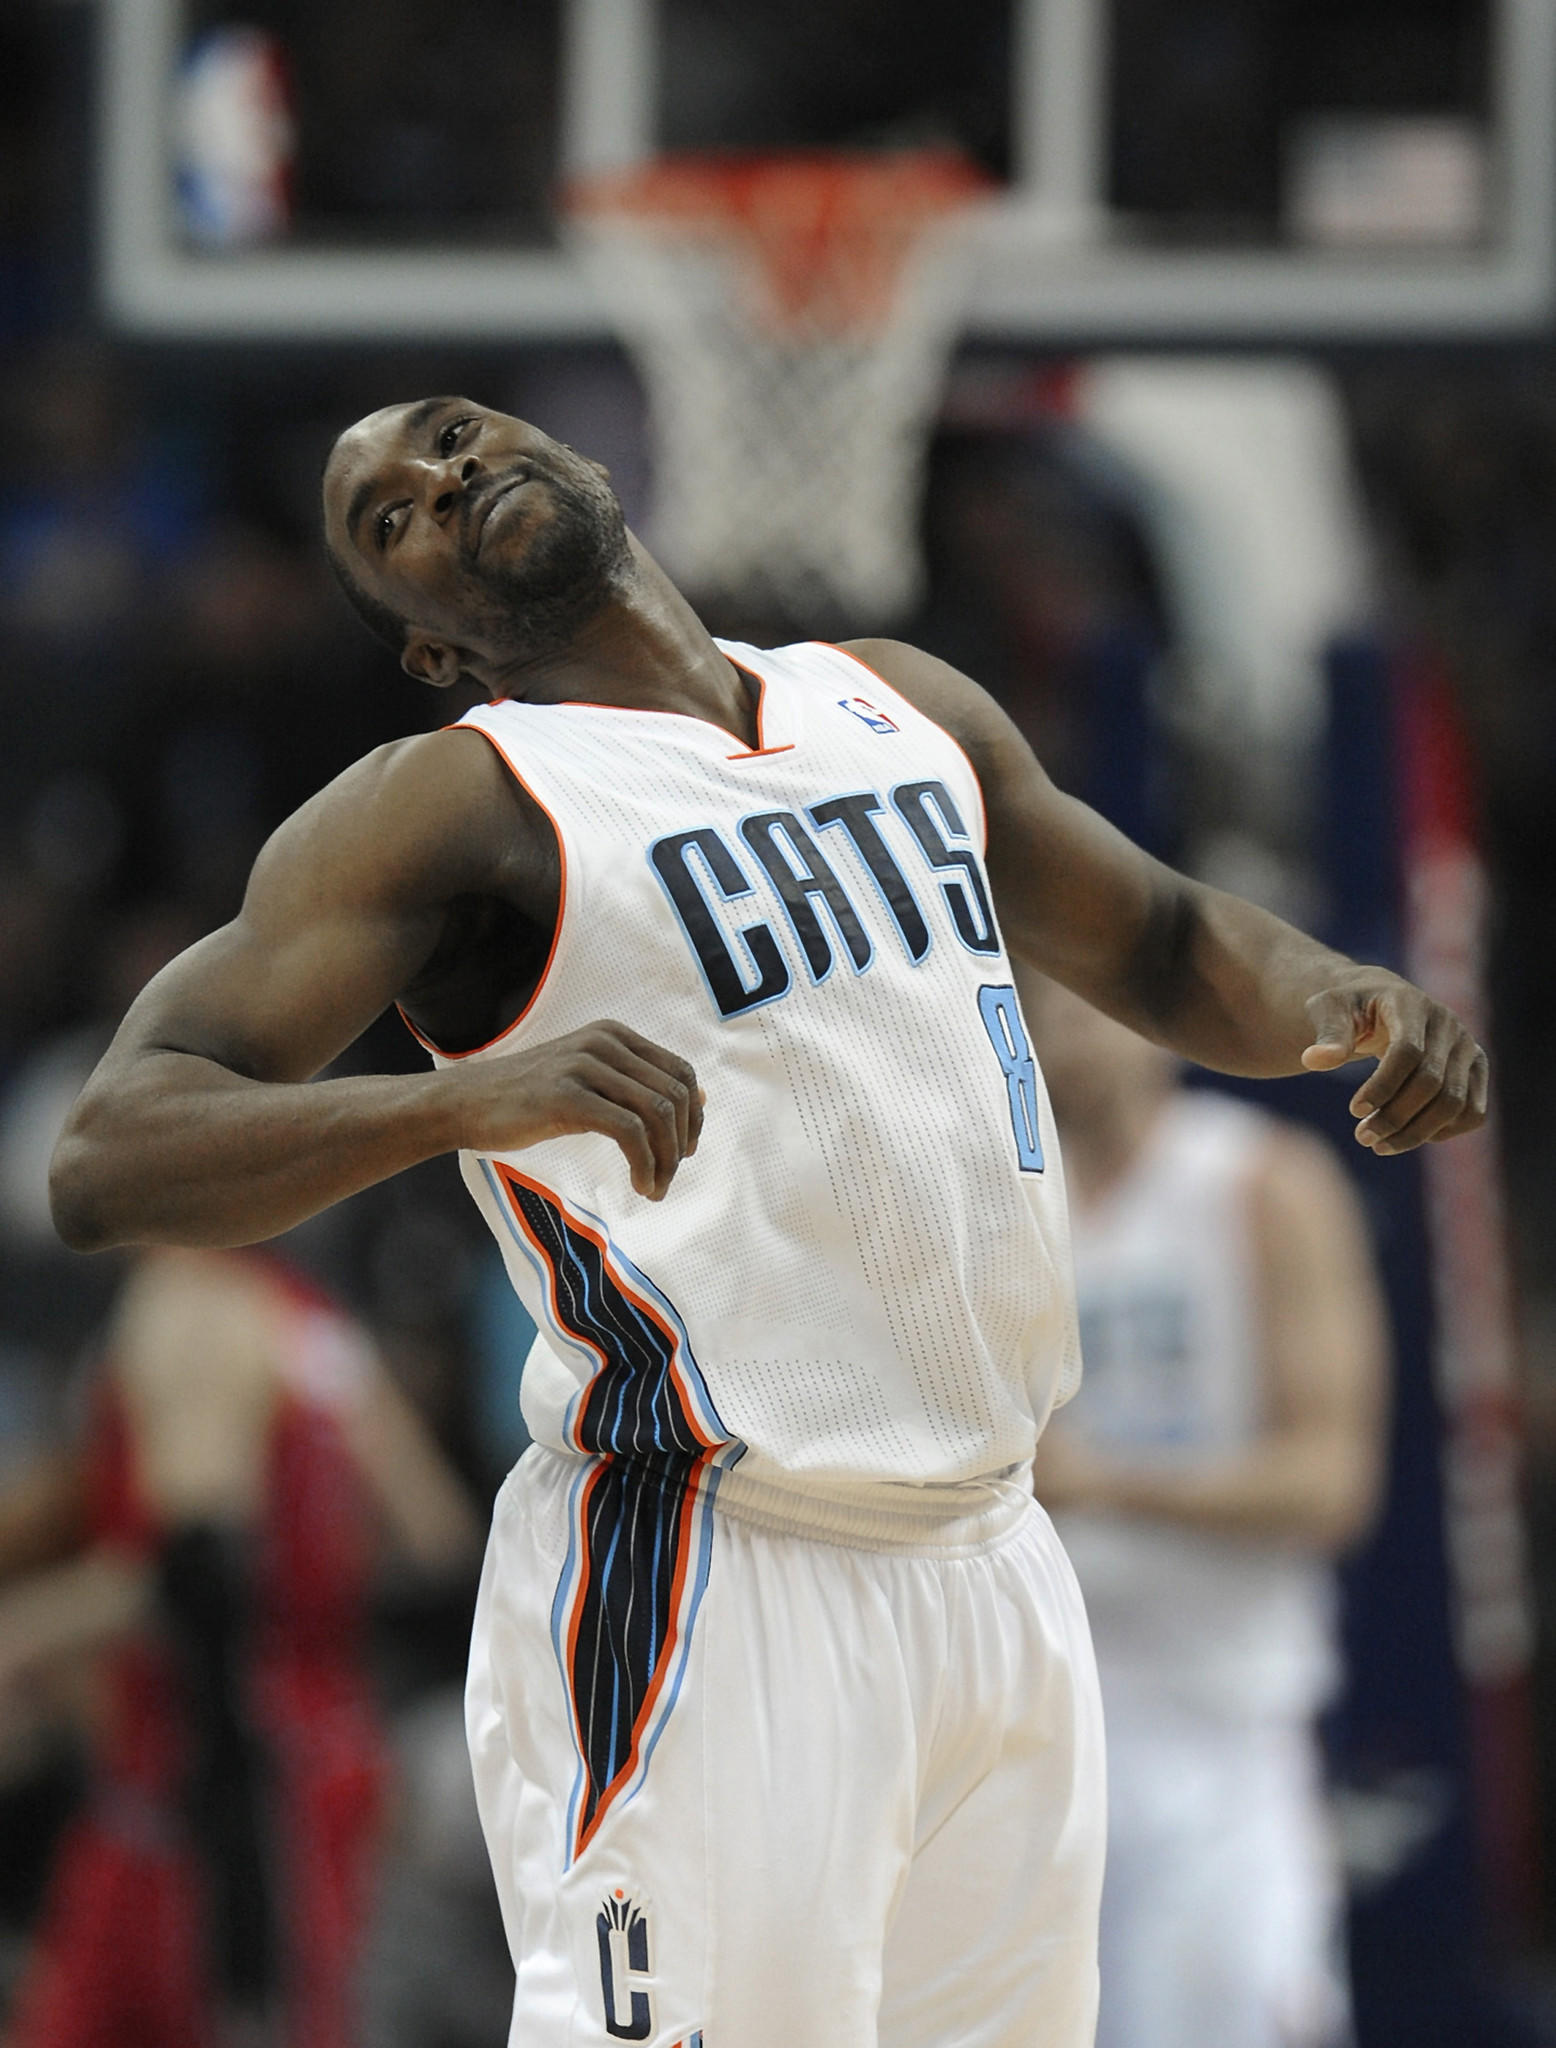 The Charlotte Bobcats' Ben Gordon spins around and smiles after hitting a 3-point basket near the two minute mark of the fourth quarter against the Toronto Raptors last season.